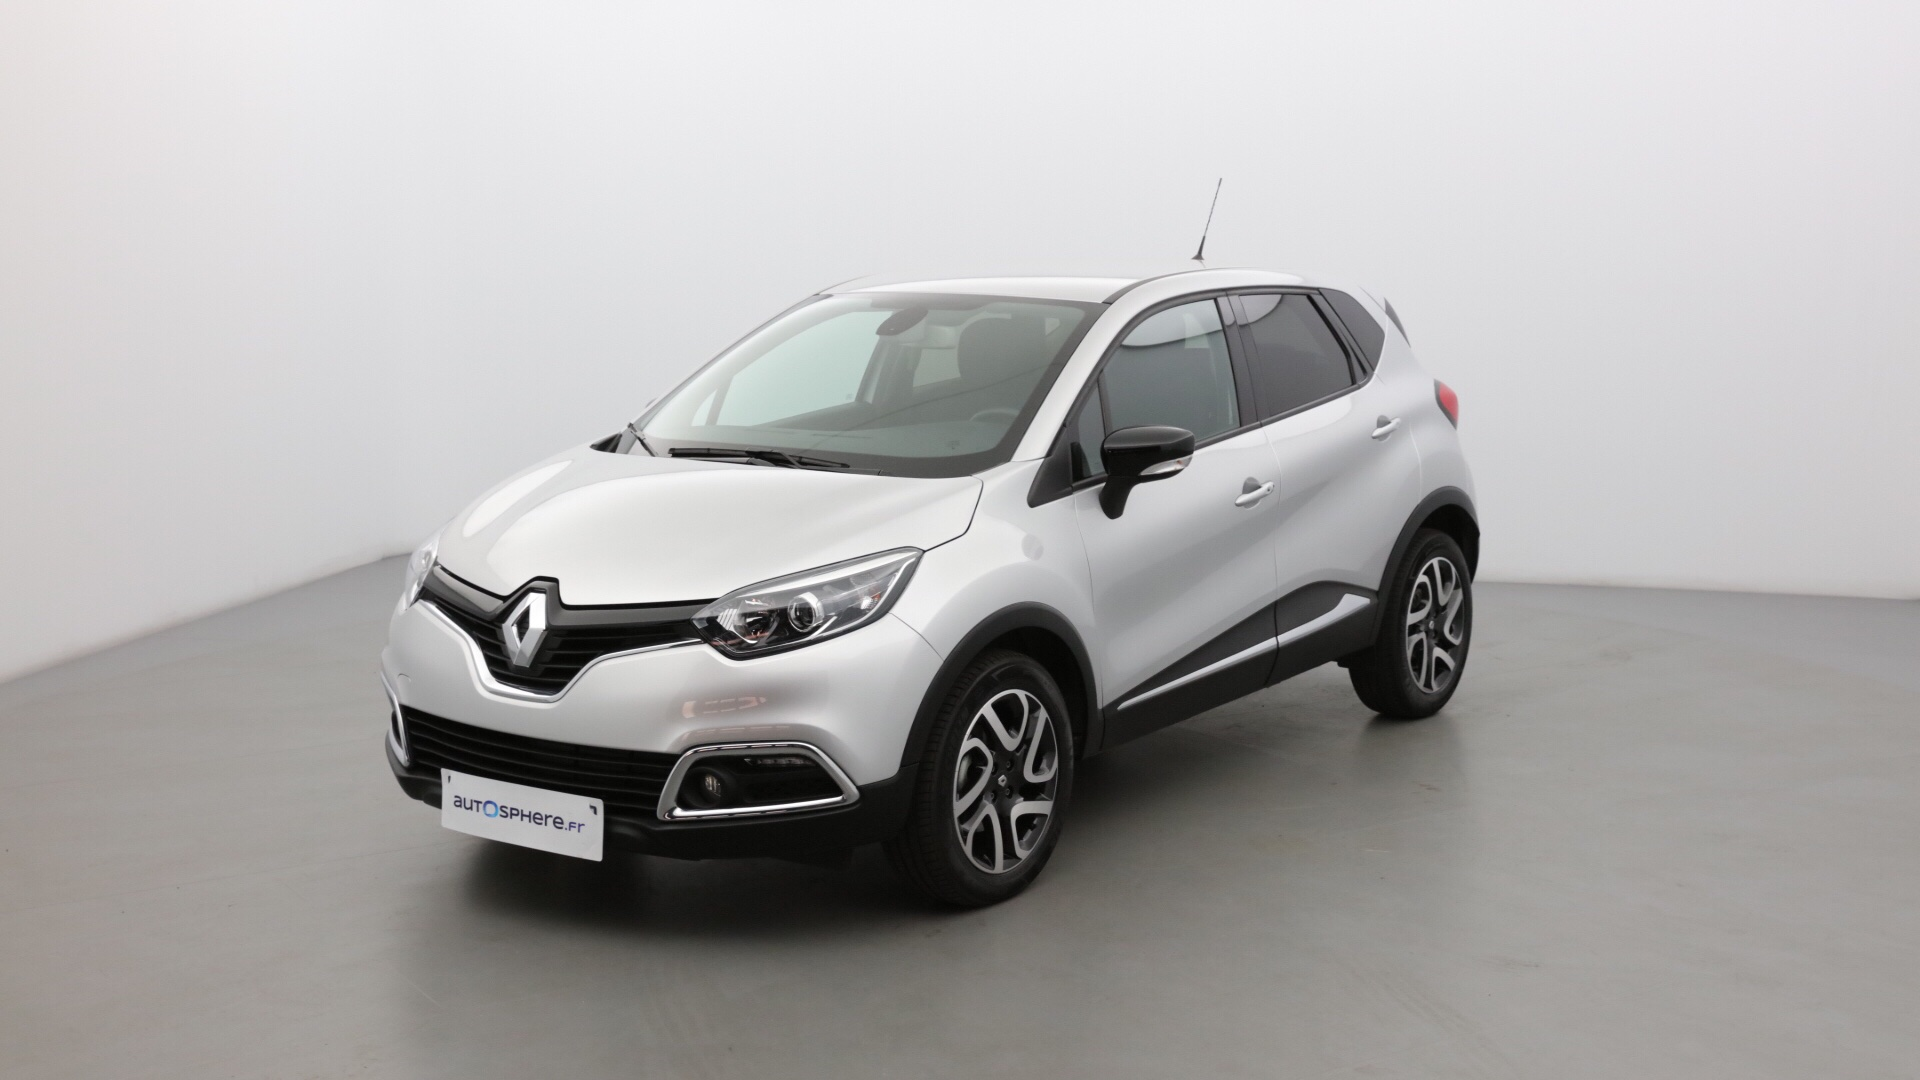 RENAULT CAPTUR 1.5 DCI 110CH STOP&START ENERGY INTENS EURO6 2016 - Photo 1